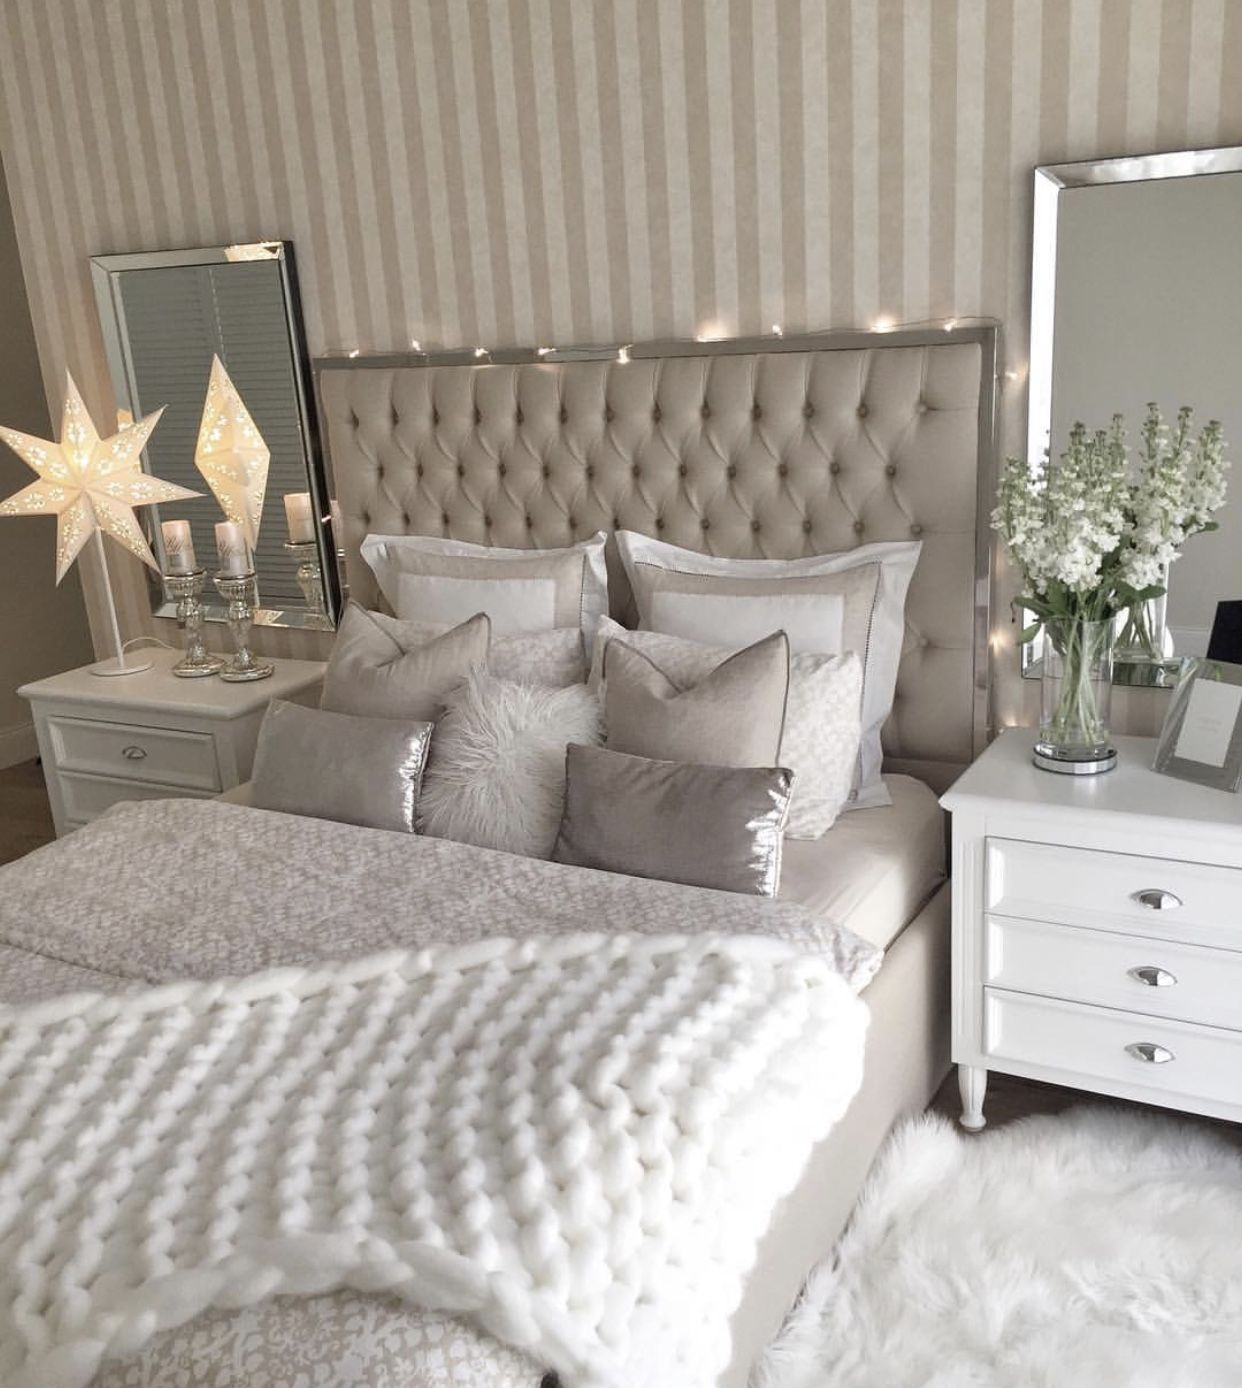 Pinterest Prinsusbre Grey Bedroom Decor Luxury Bedroom Design Luxury Bedroom Master